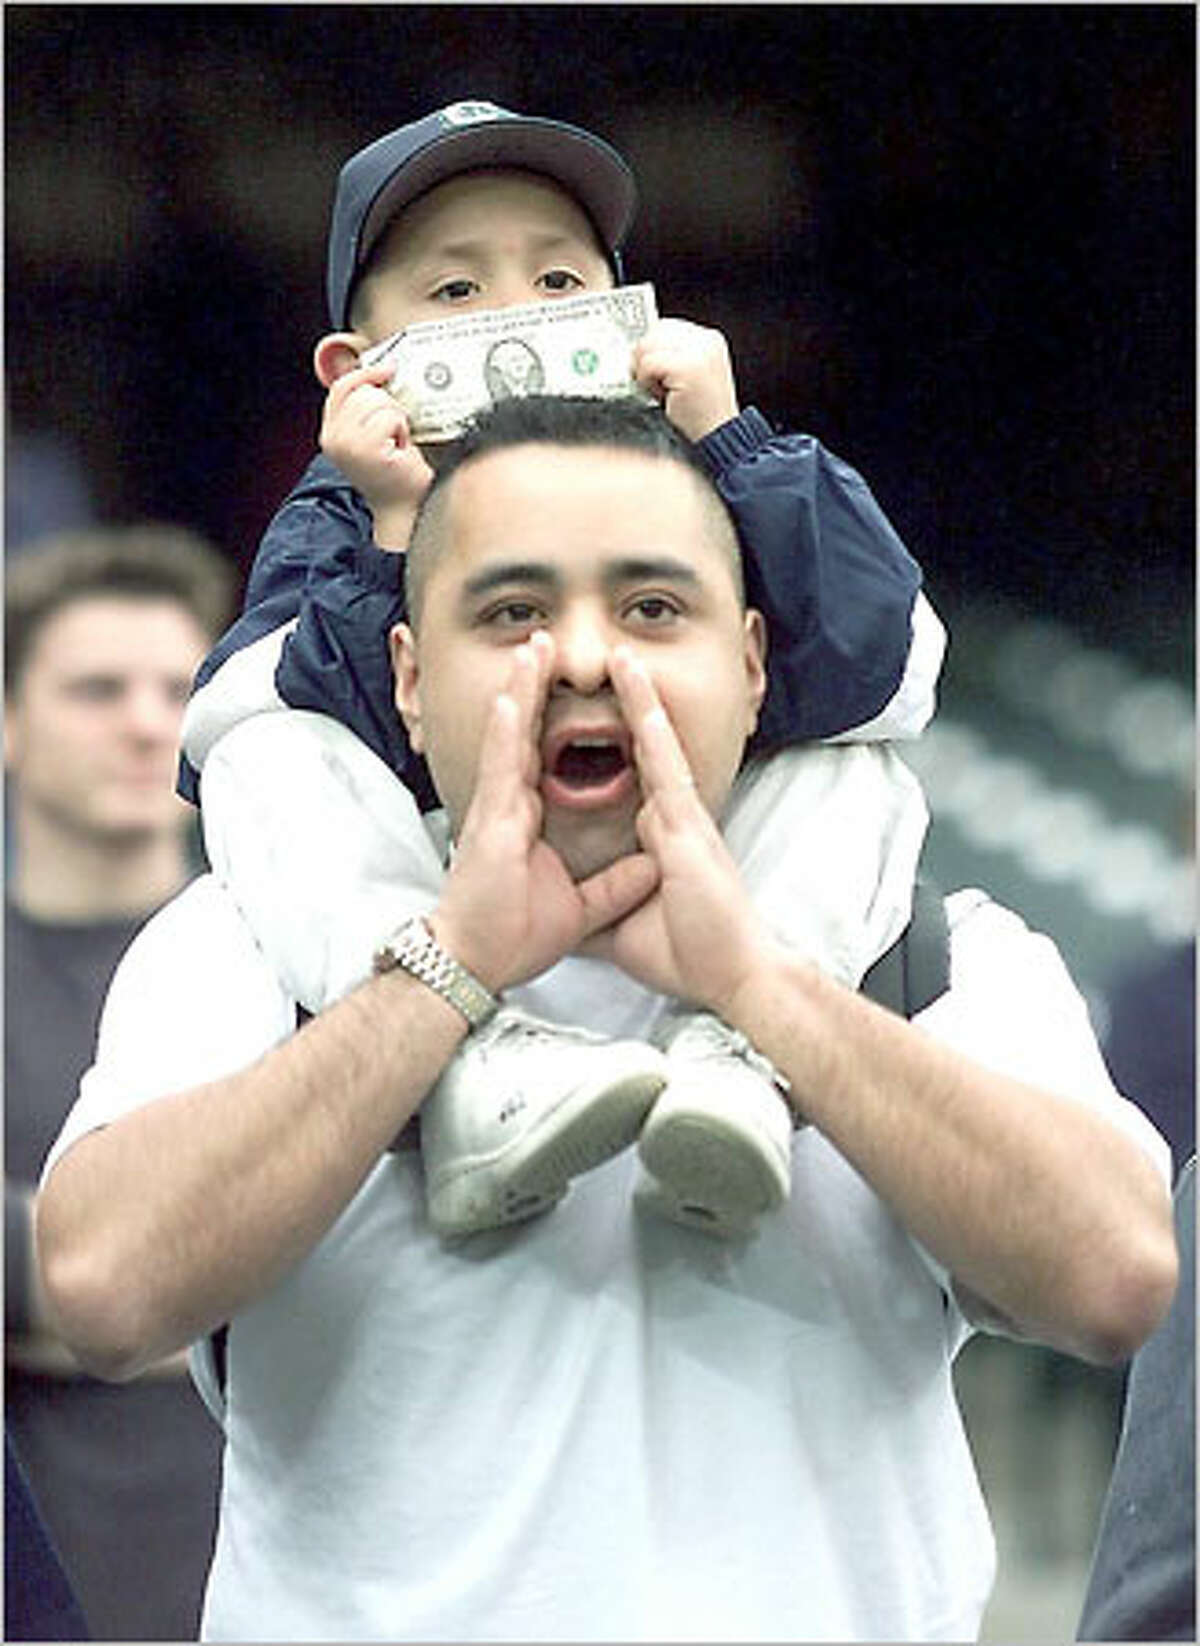 Nathan Trujillo Jr., 5, holds up a dollar bill and joins his father Nathan in booing Alex Rodriguez, who left the Seattle Mariners in a $252 million deal with the Texas Rangers.